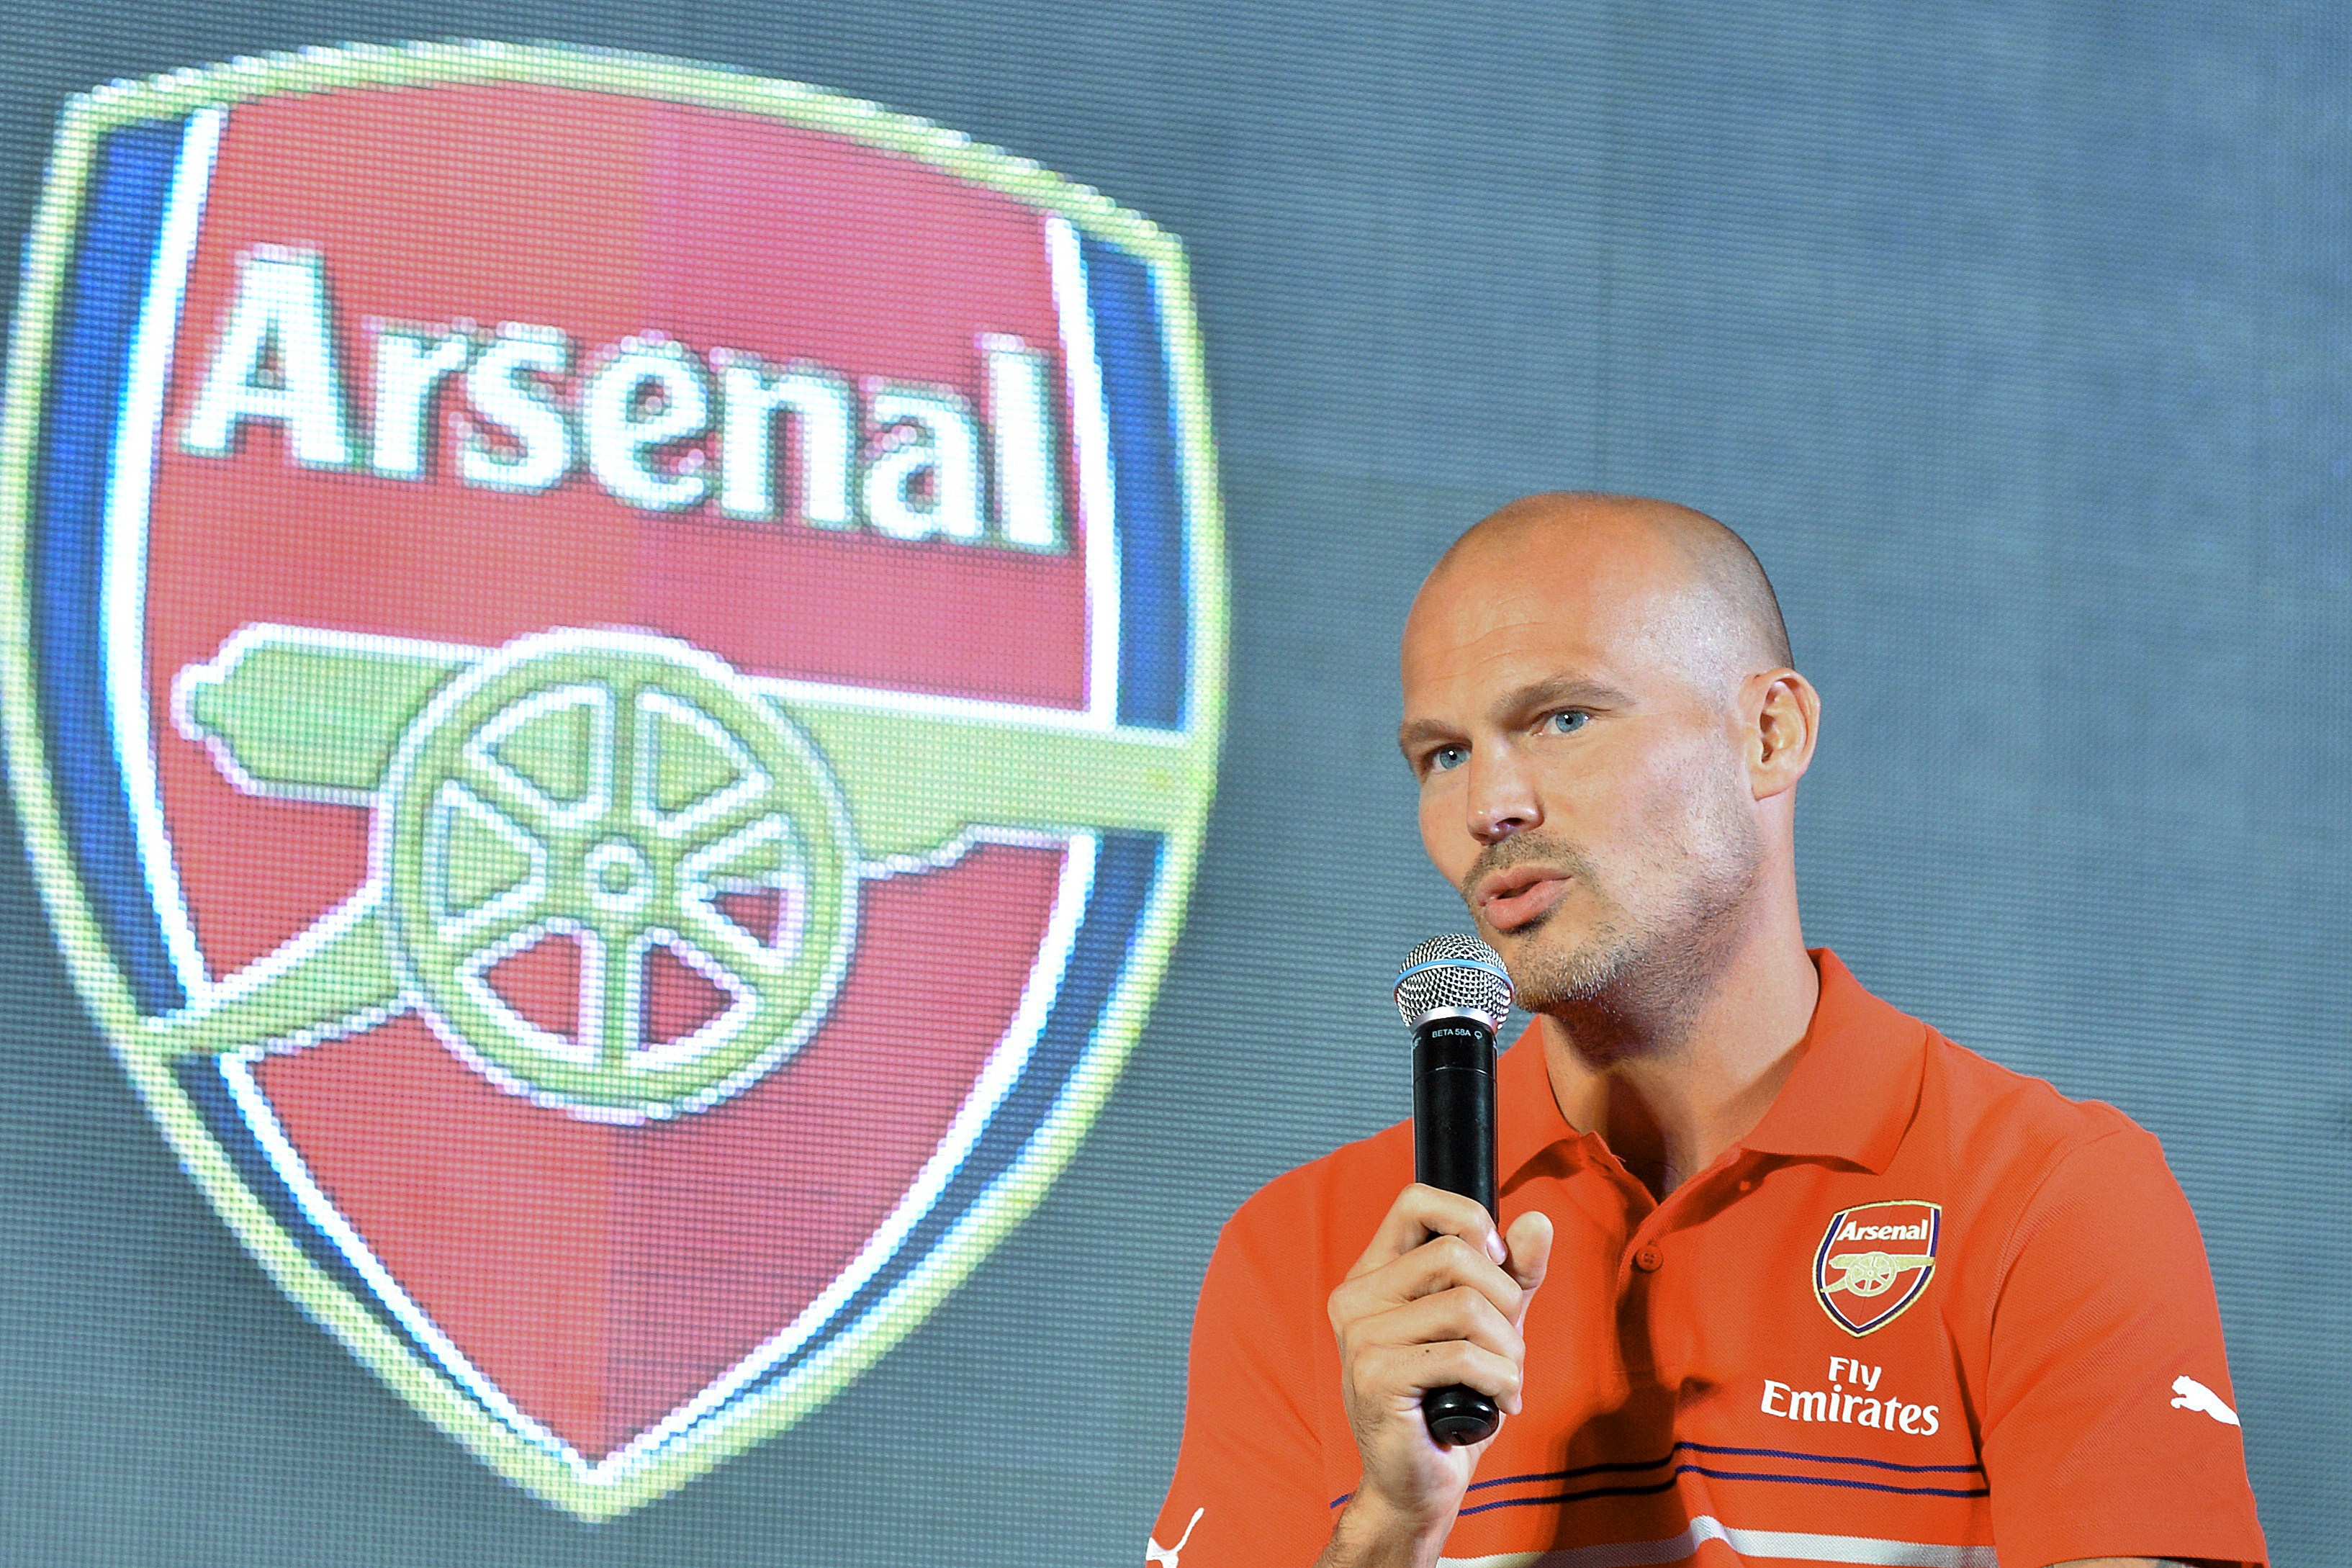 Freddie Ljungberg confirms Arsenal coaching role with youth academy